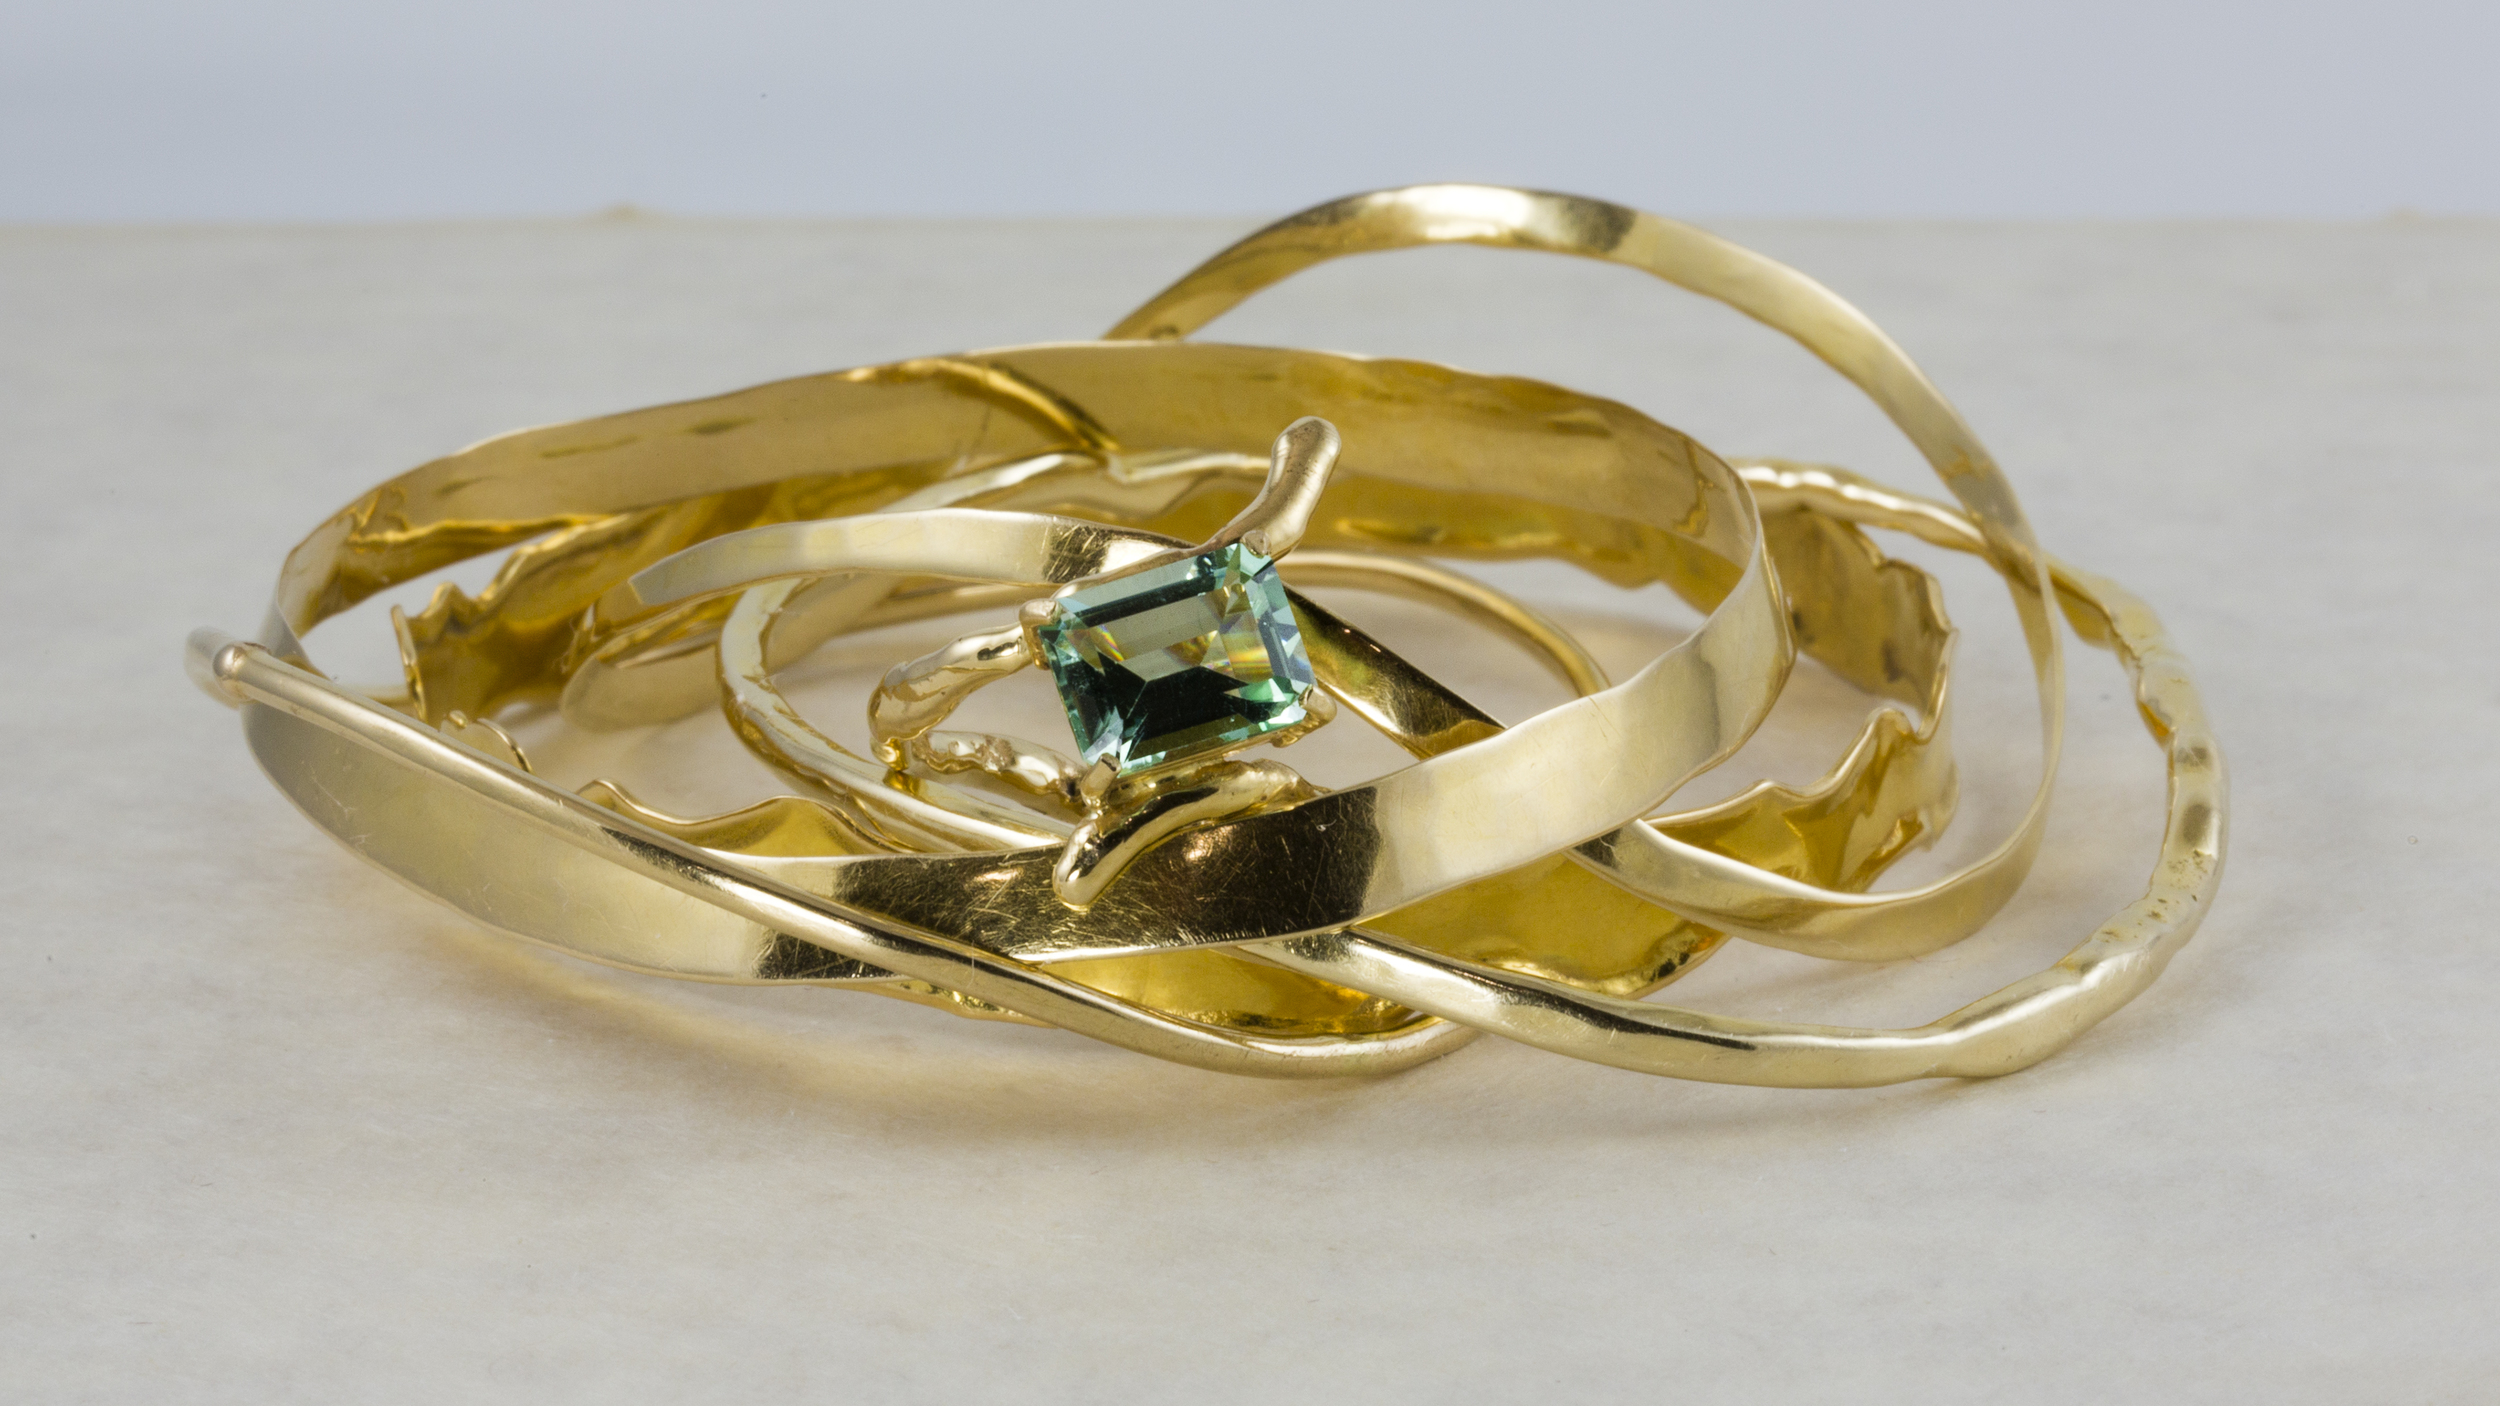 """Twig"" Bracelets, Surrounding the ""Twig"" Ring, set with a Green Blue Tourmaline"